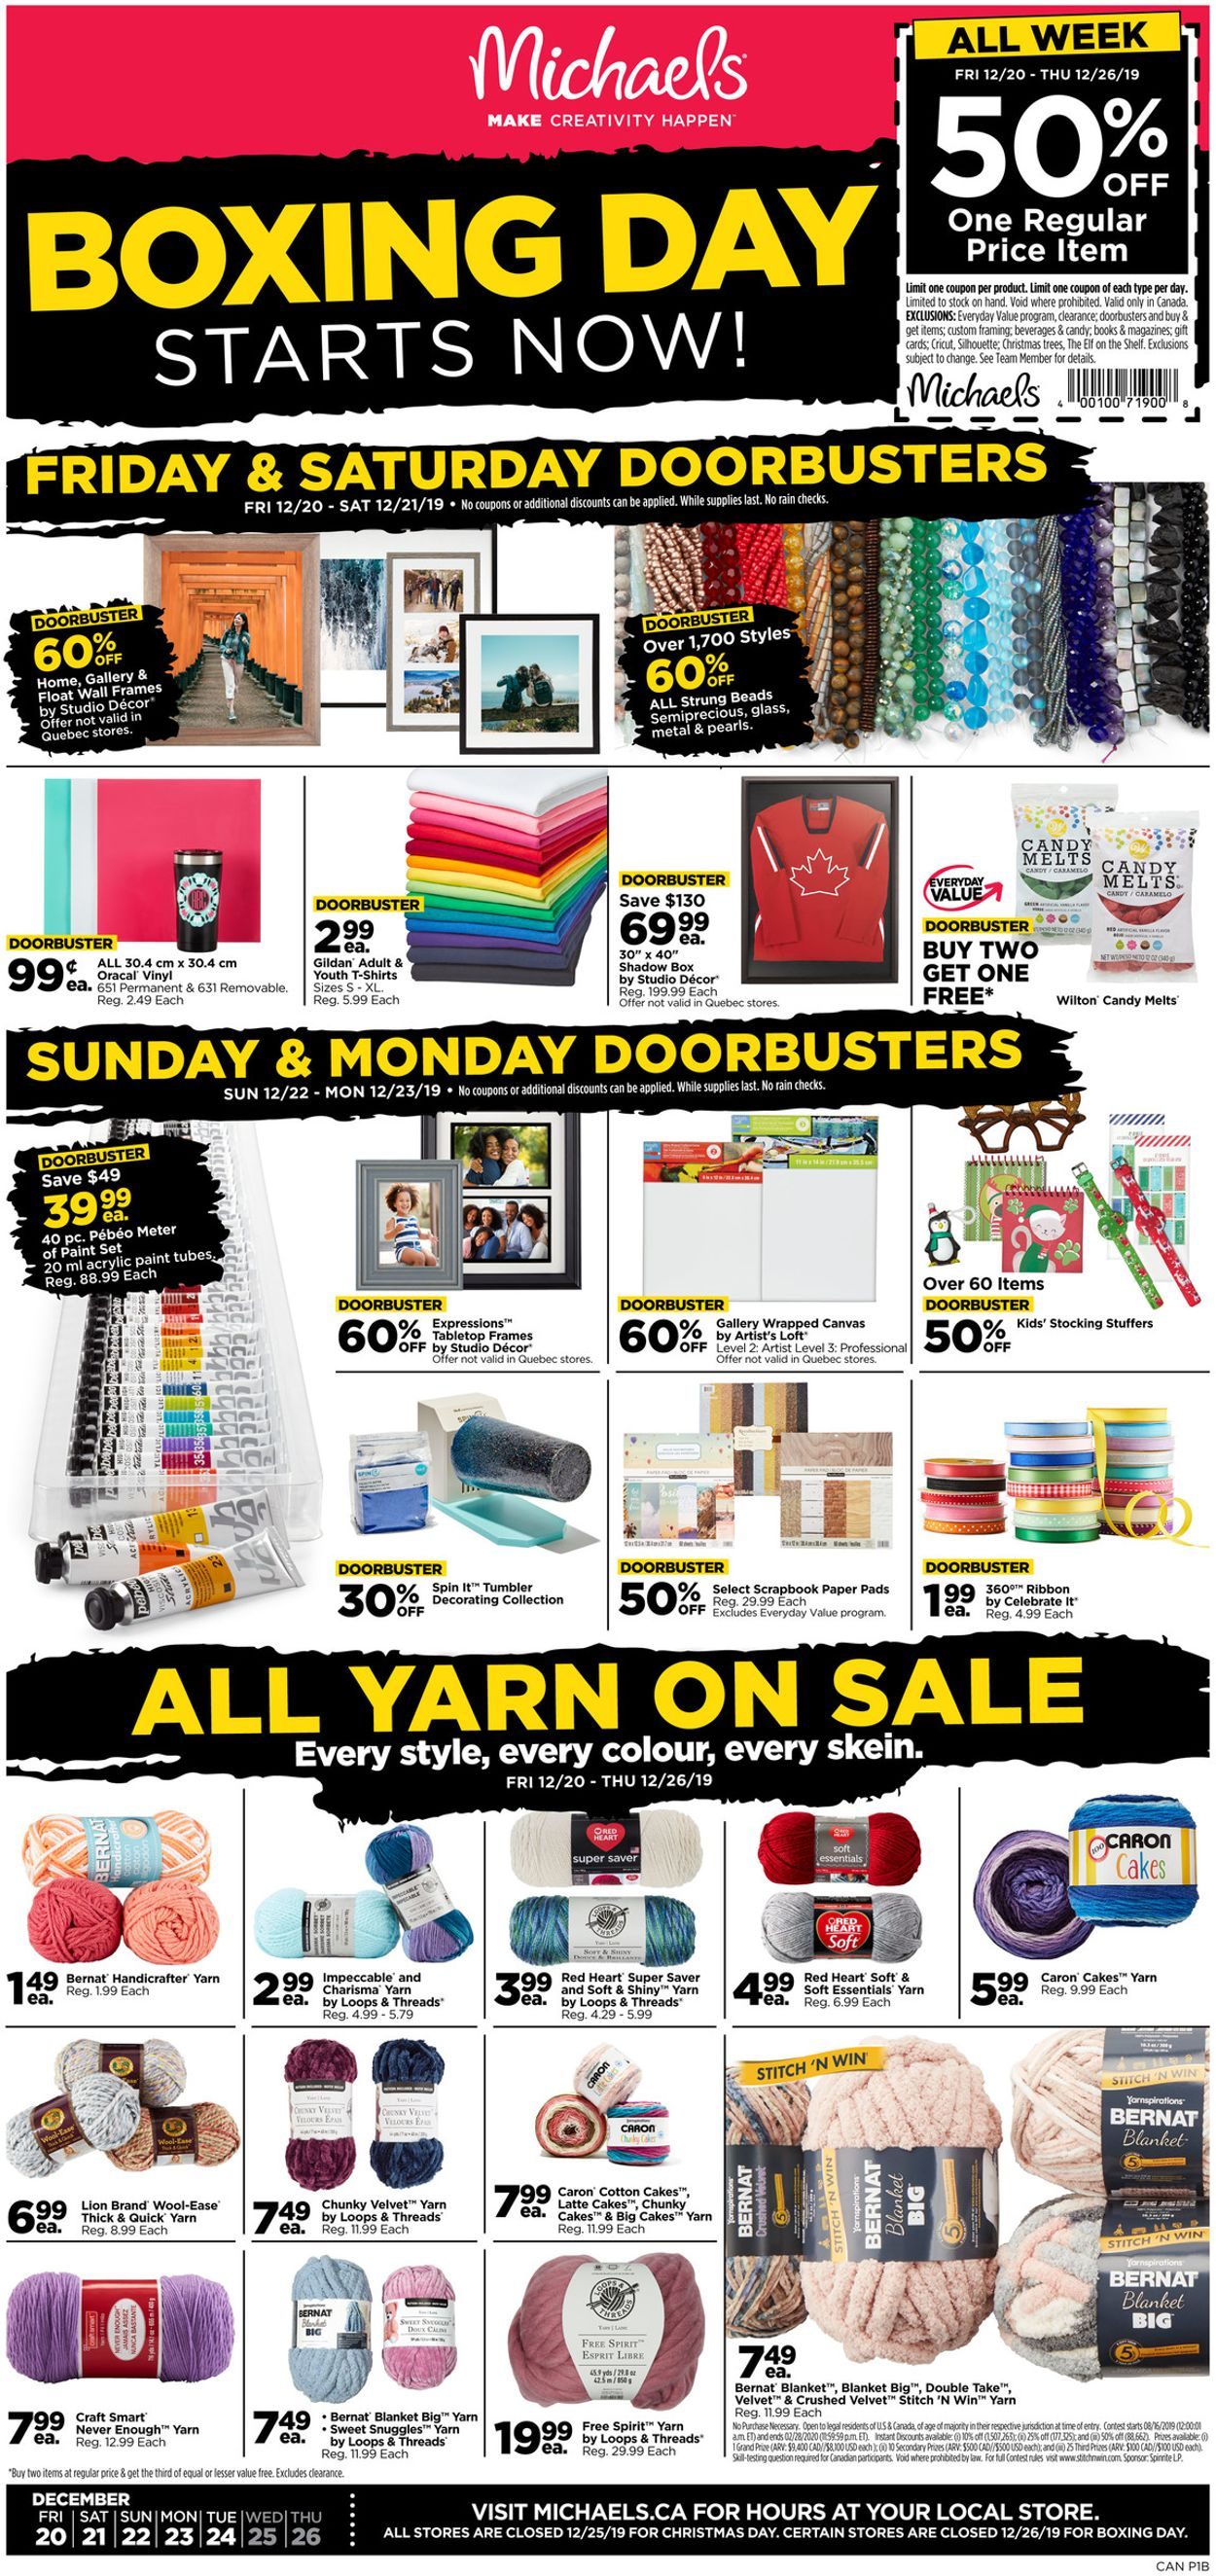 Michaels - BOXING DAY 2019 SALE